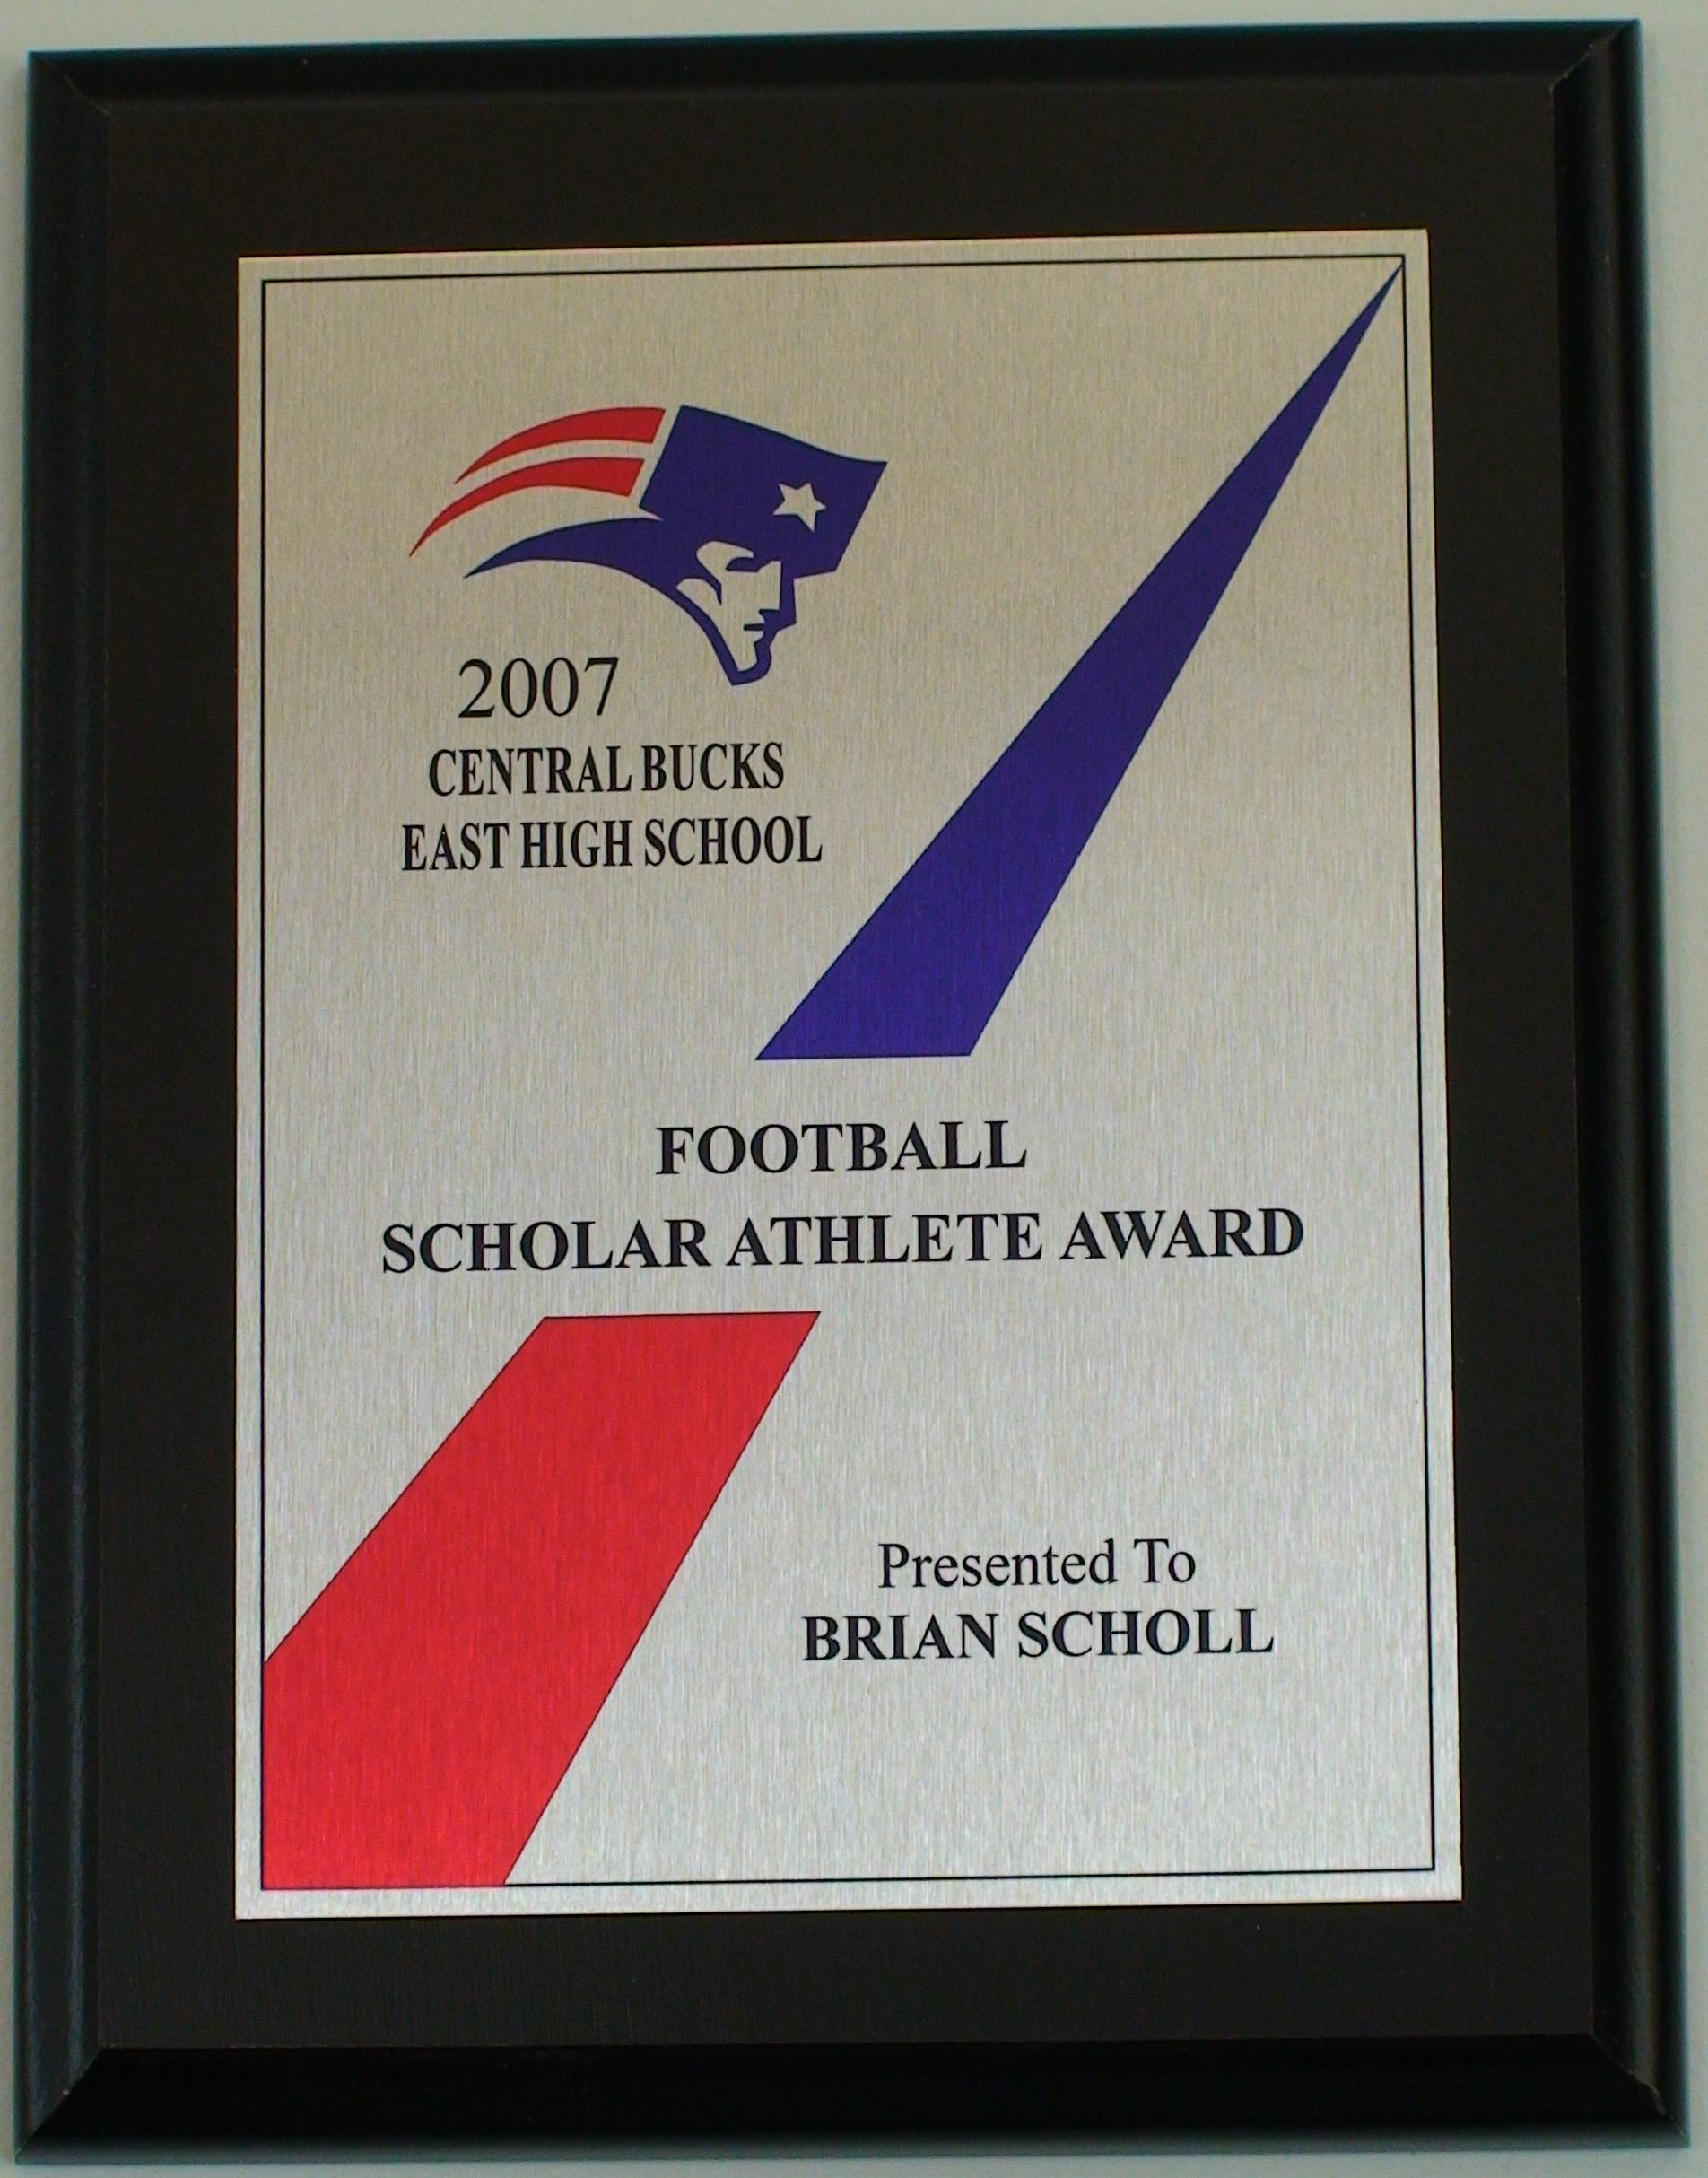 central bucks plaque scholar athlete coaches awards plaques